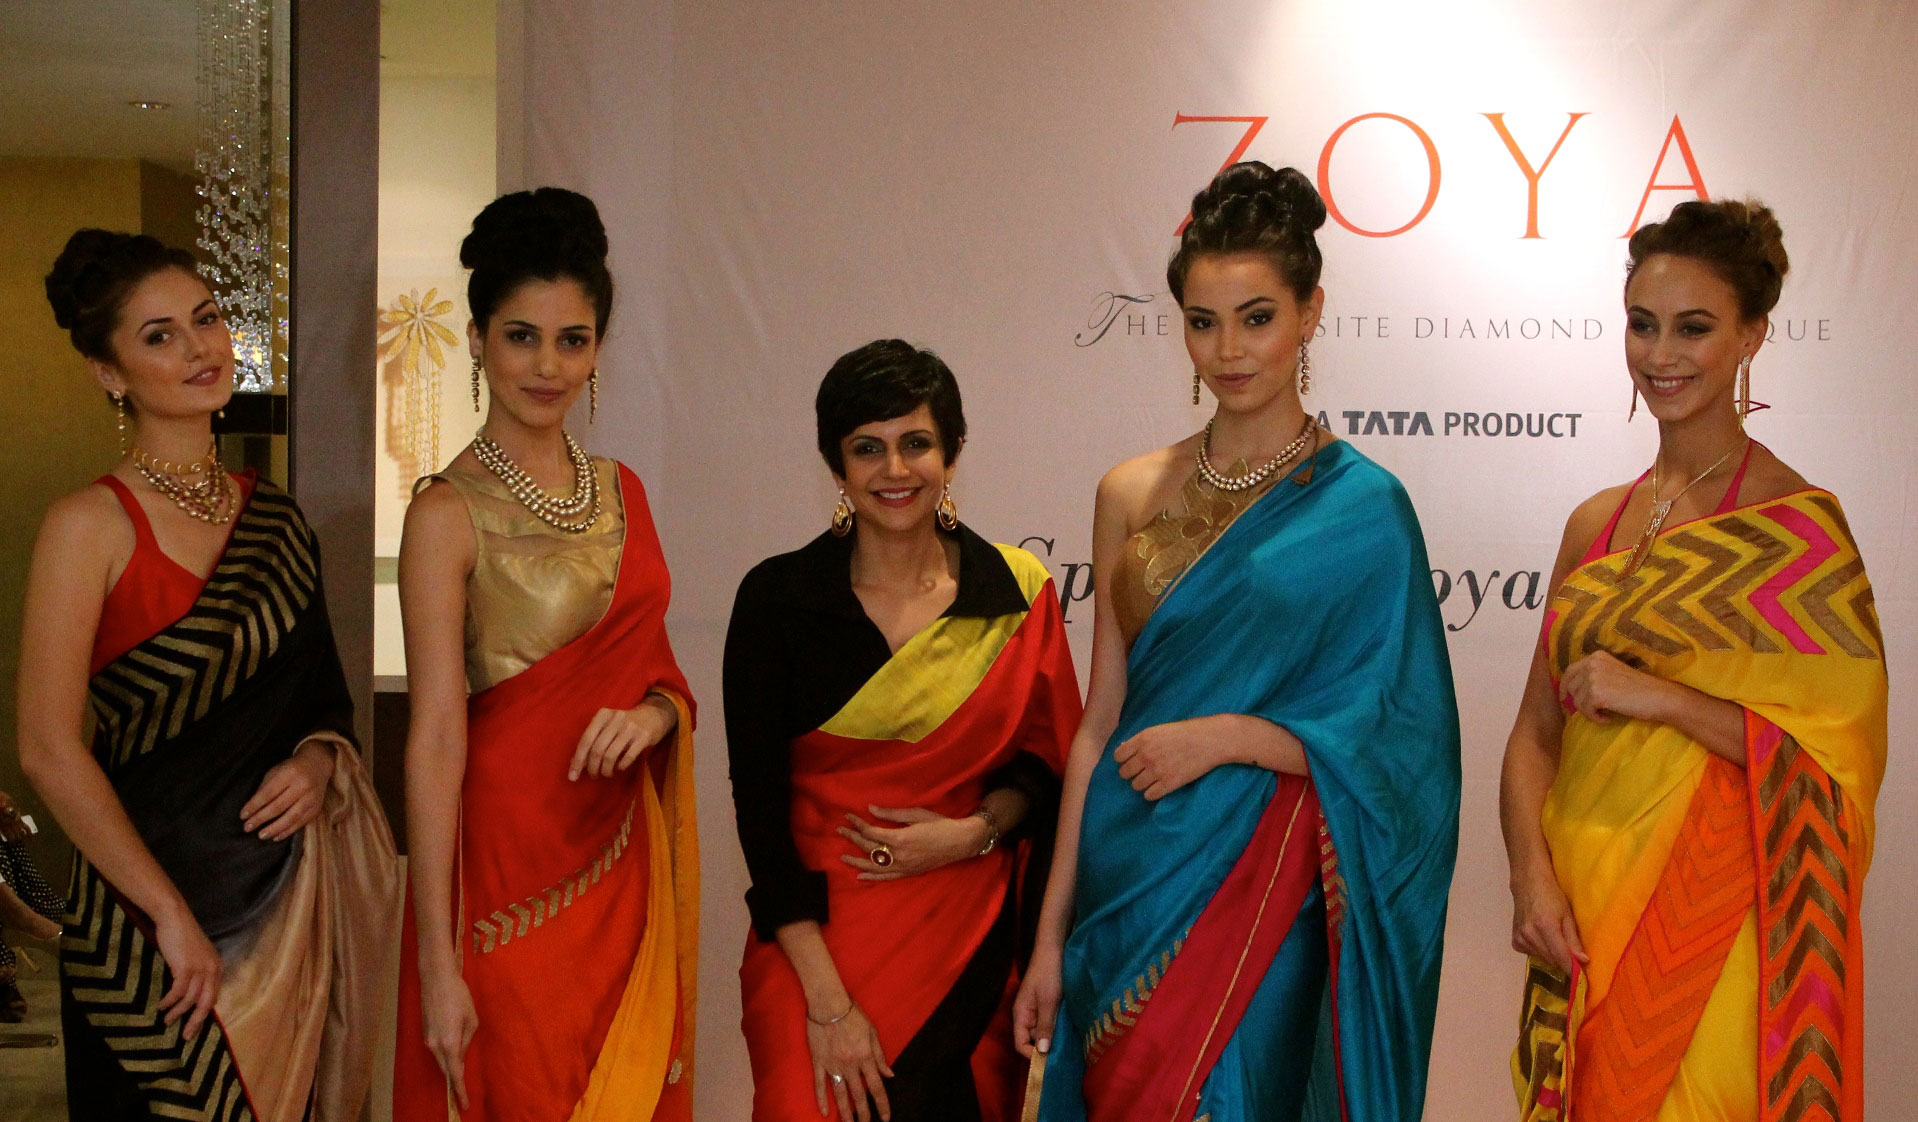 Honouring the spirit of Mandira Bedi - Zoya